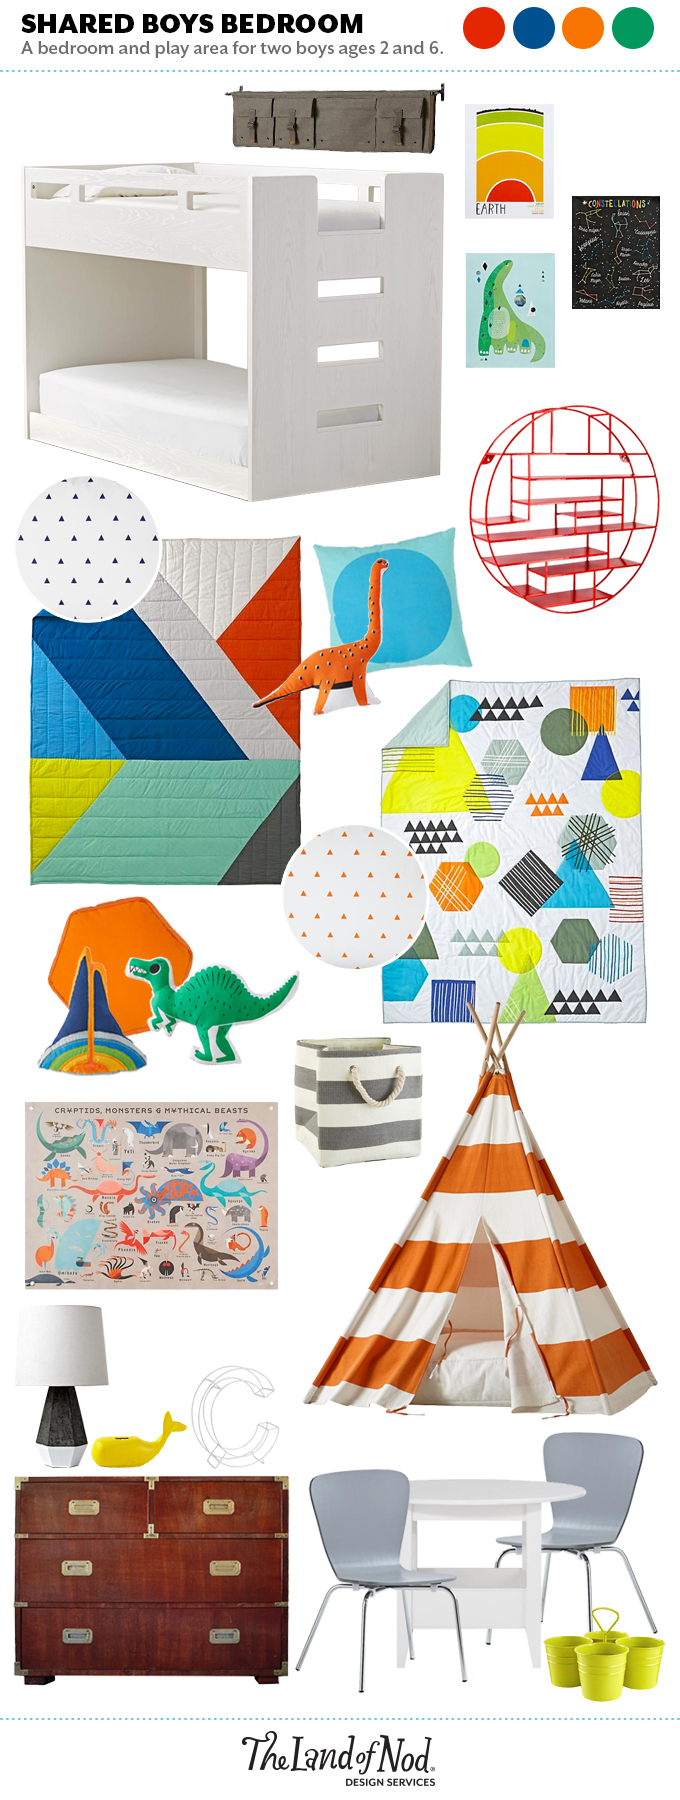 designing a shared boys' room with The Land of Nod